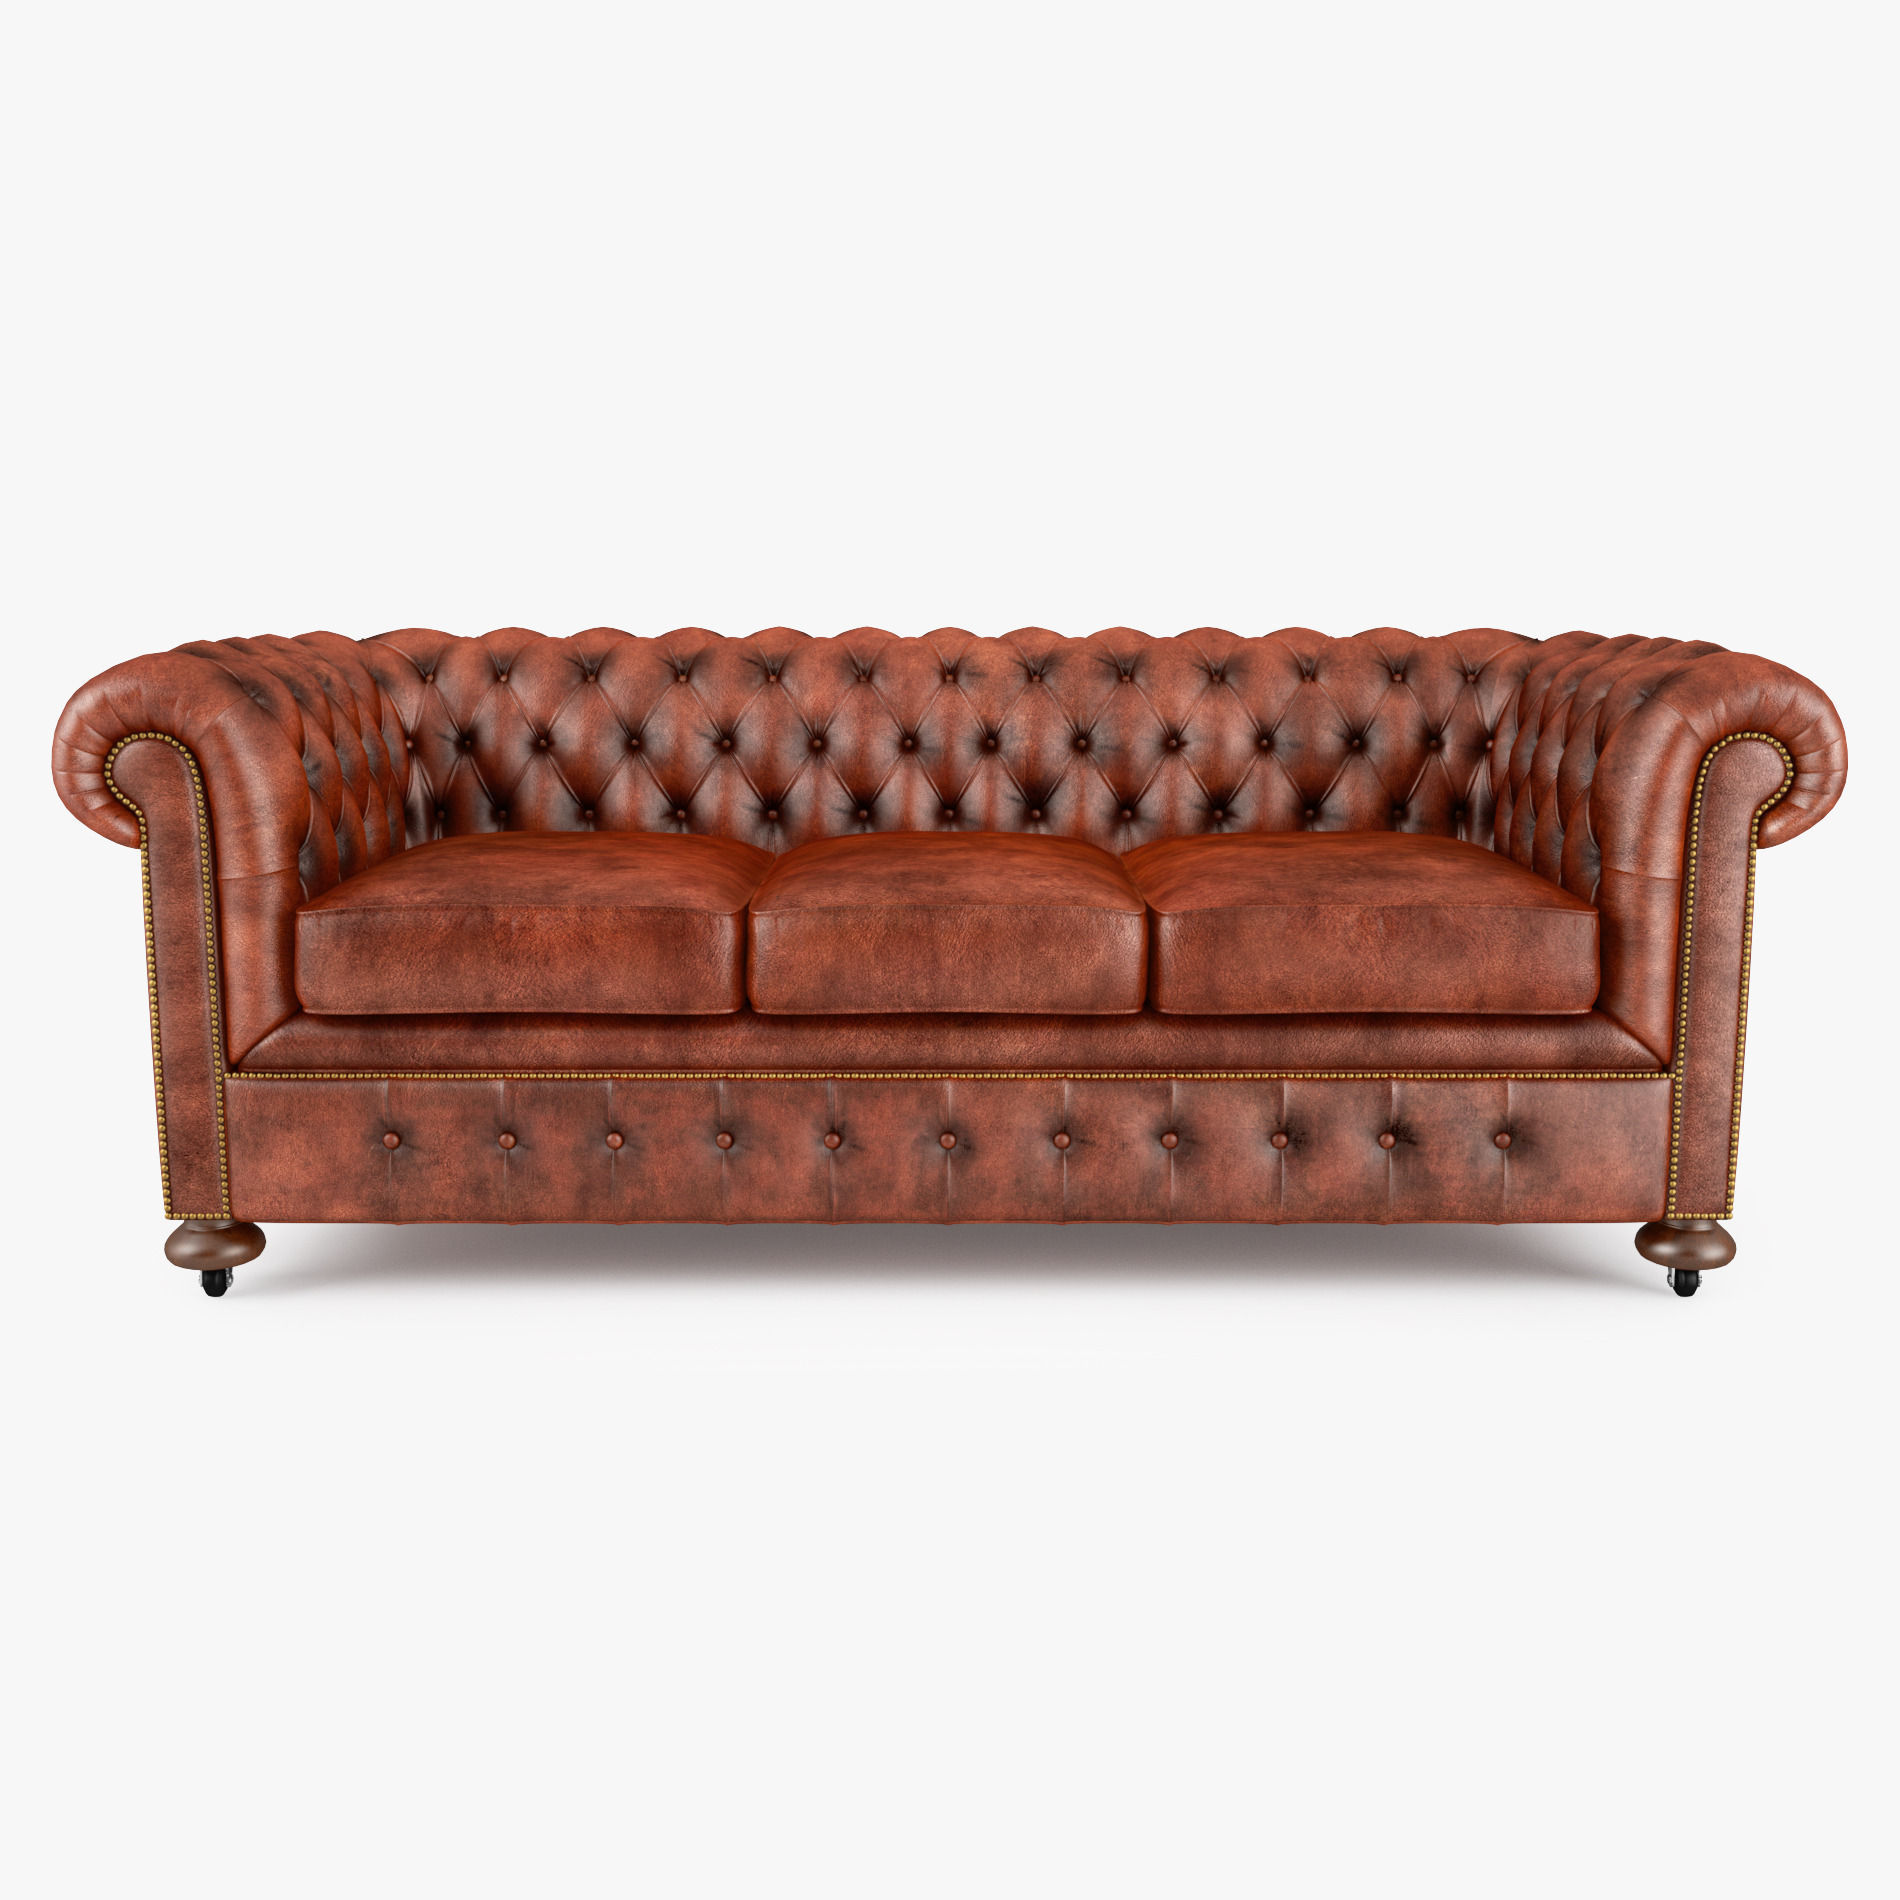 William Blake Sofa Chesterfield Leather 3d Model Max Obj 3ds Fbx Mtl 1 ...